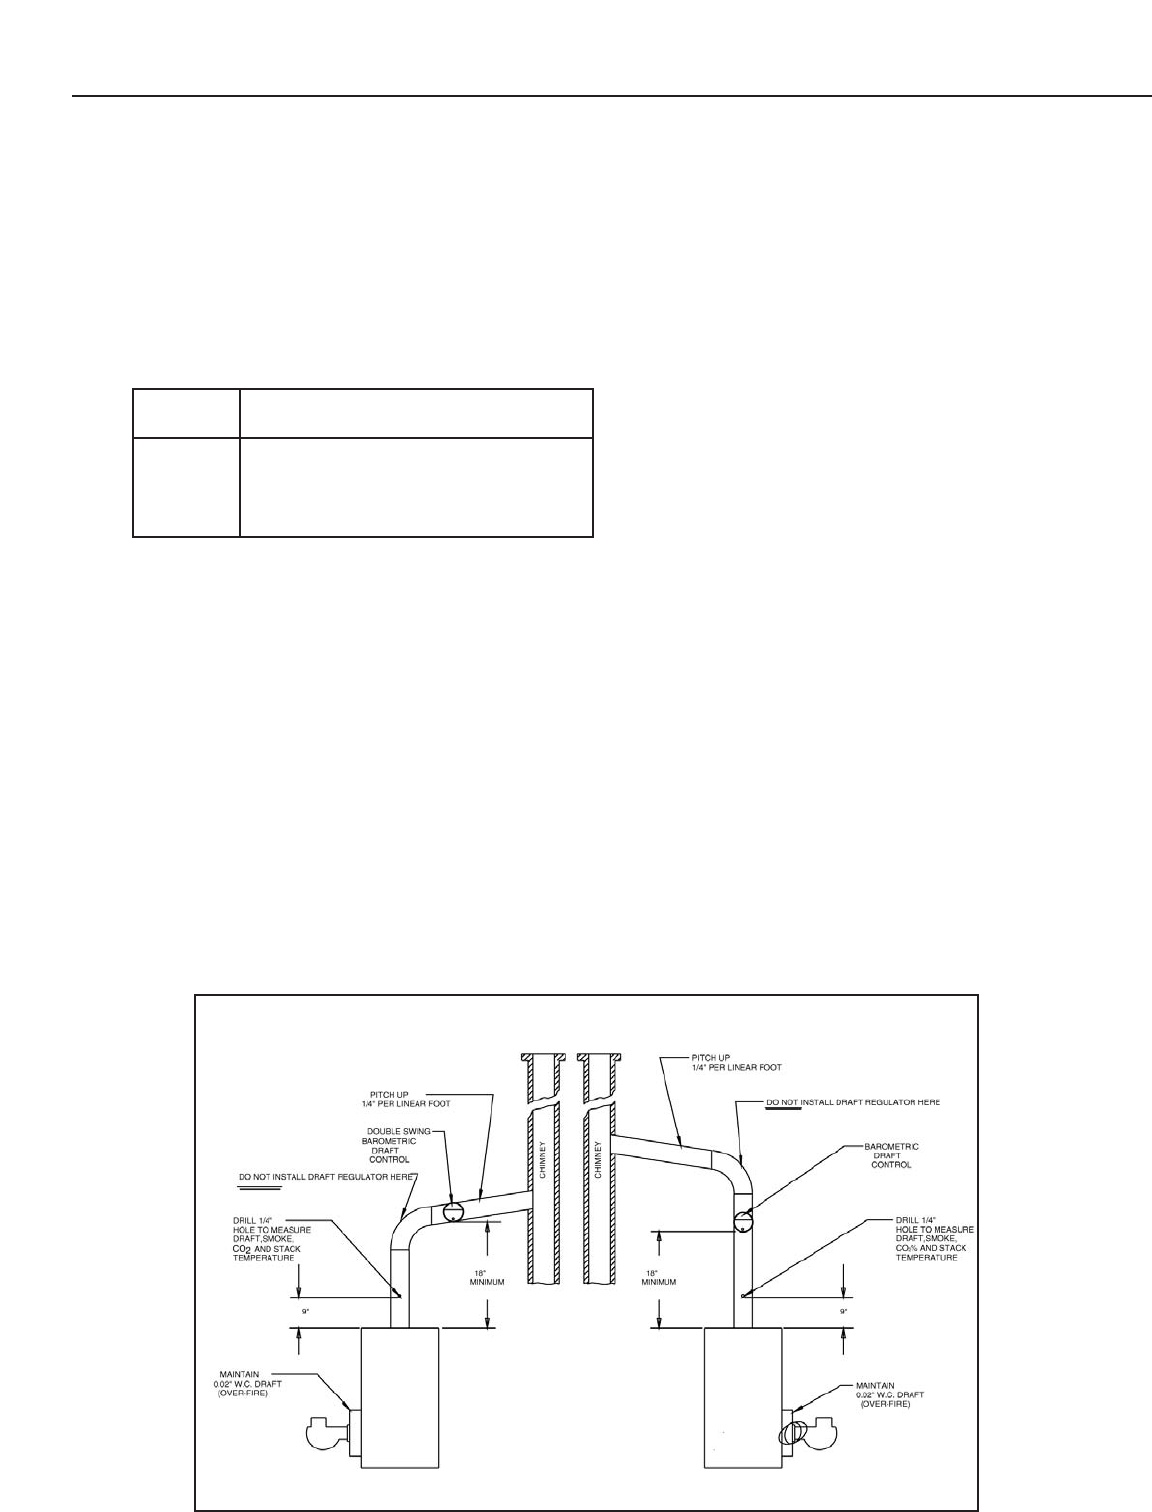 Slant Fin Xl 2000 Users Manual Wh40 Wiring Diagram The Installation Instructions In This